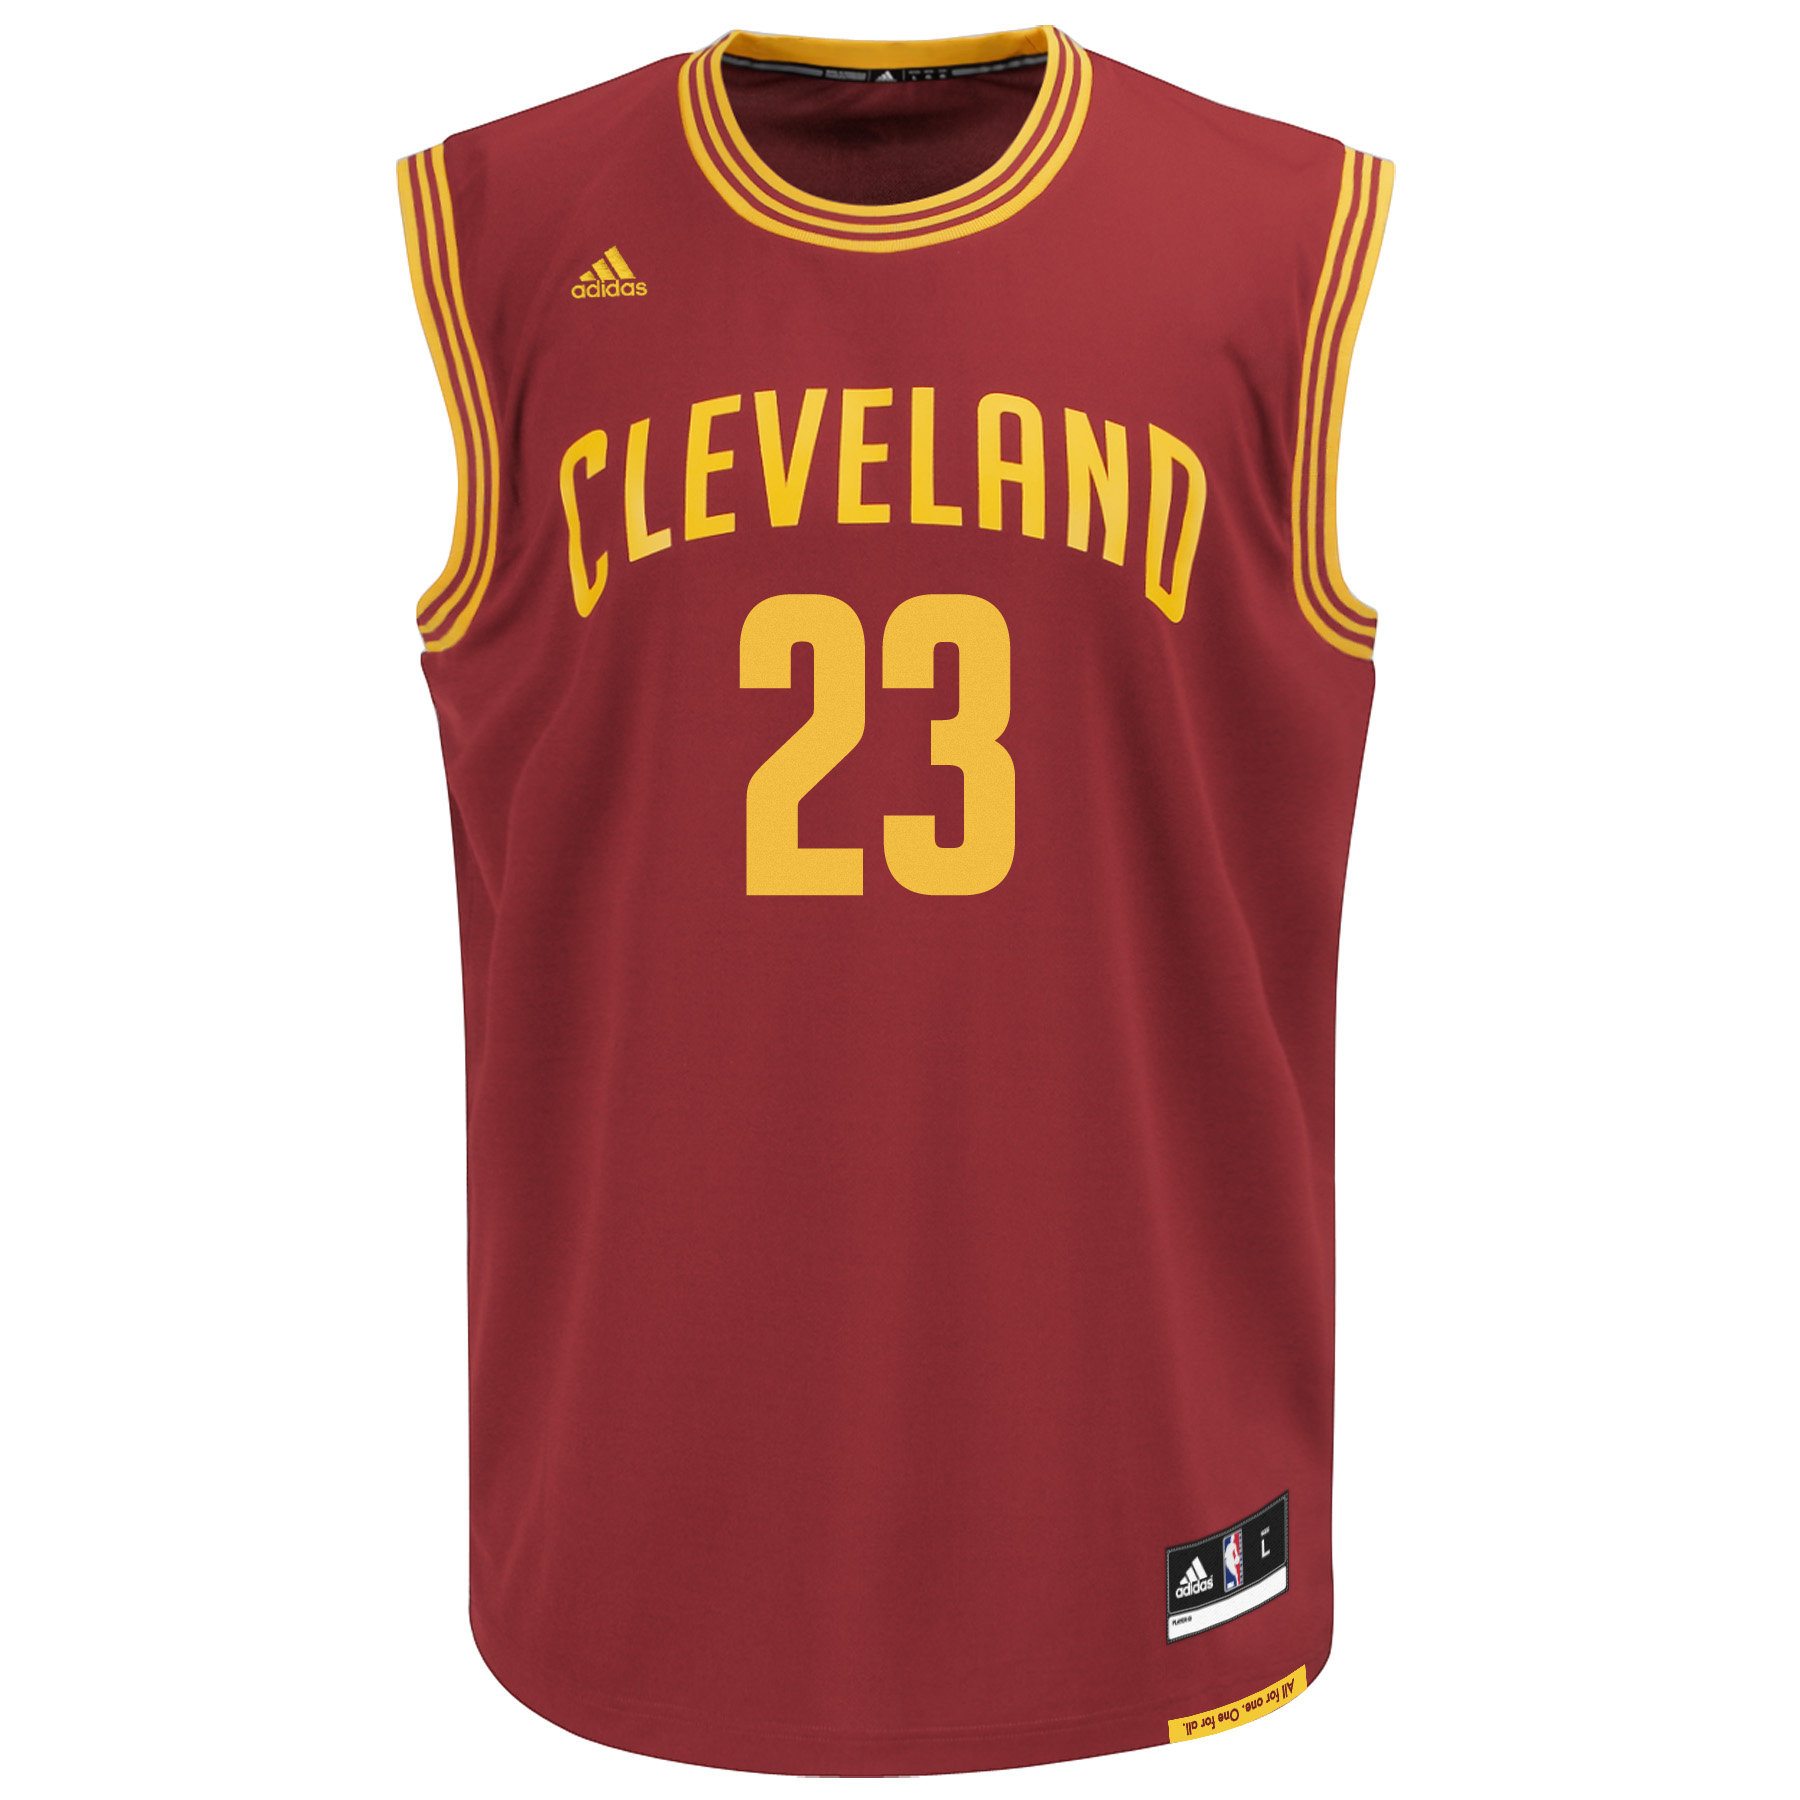 Lebron James Cleveland Cavaliers Youth Adidas NBA Replica Jersey - Red